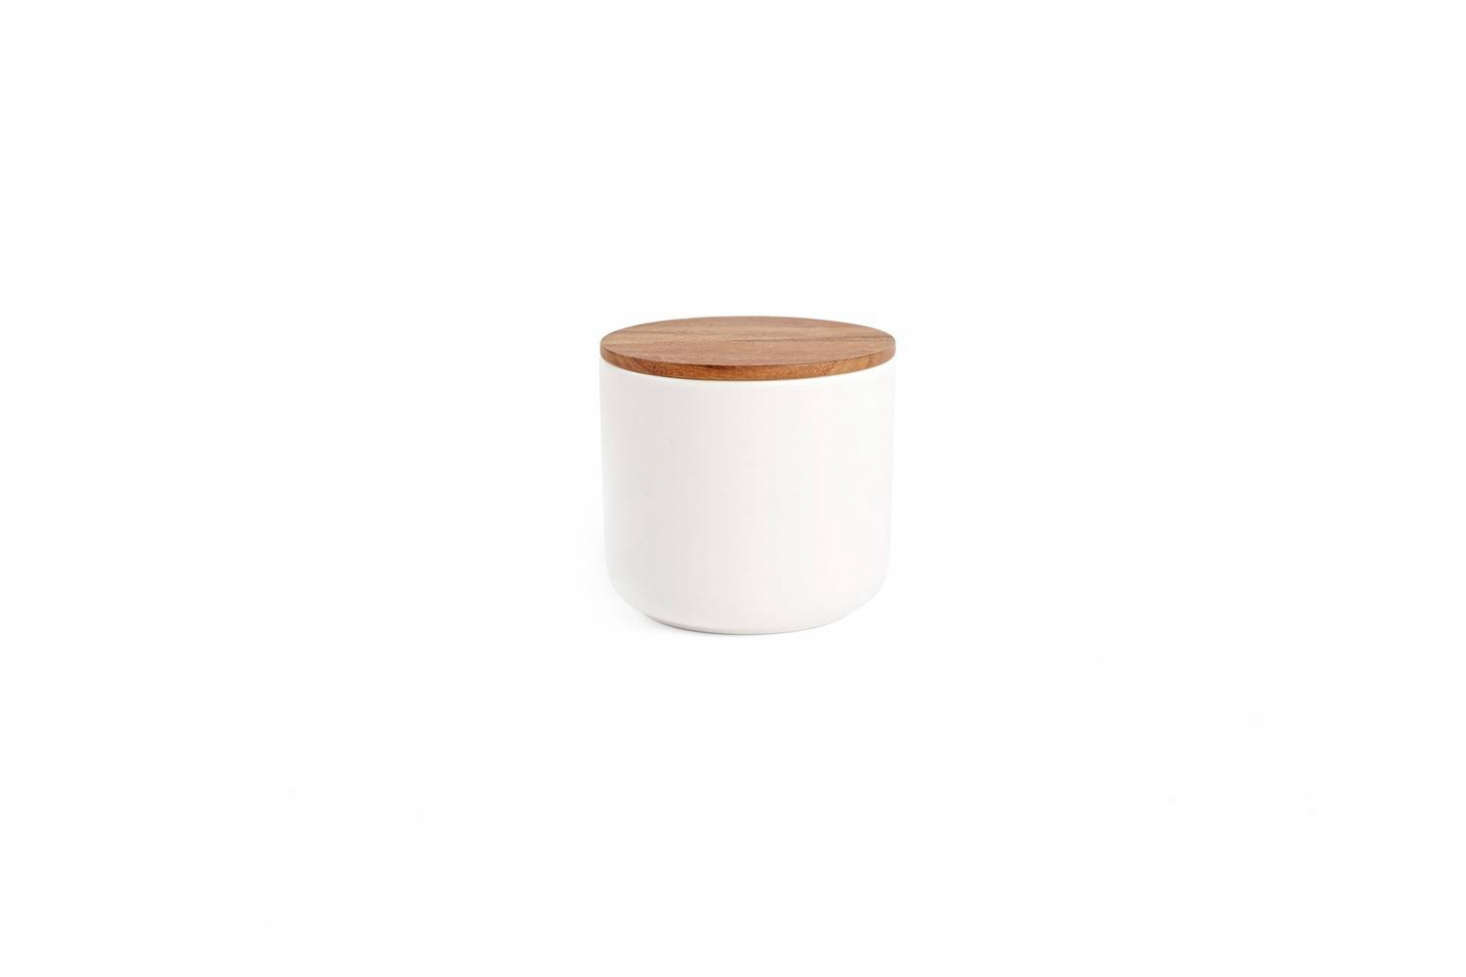 """Store soaps and toiletries in stoneware Canister with Wood Lids available in the large size for $39 each at Rejuvenation. (For a """"high"""" version of the containers, consider Vincent van Duysen's White Ceramic Canisters, available at March.)"""